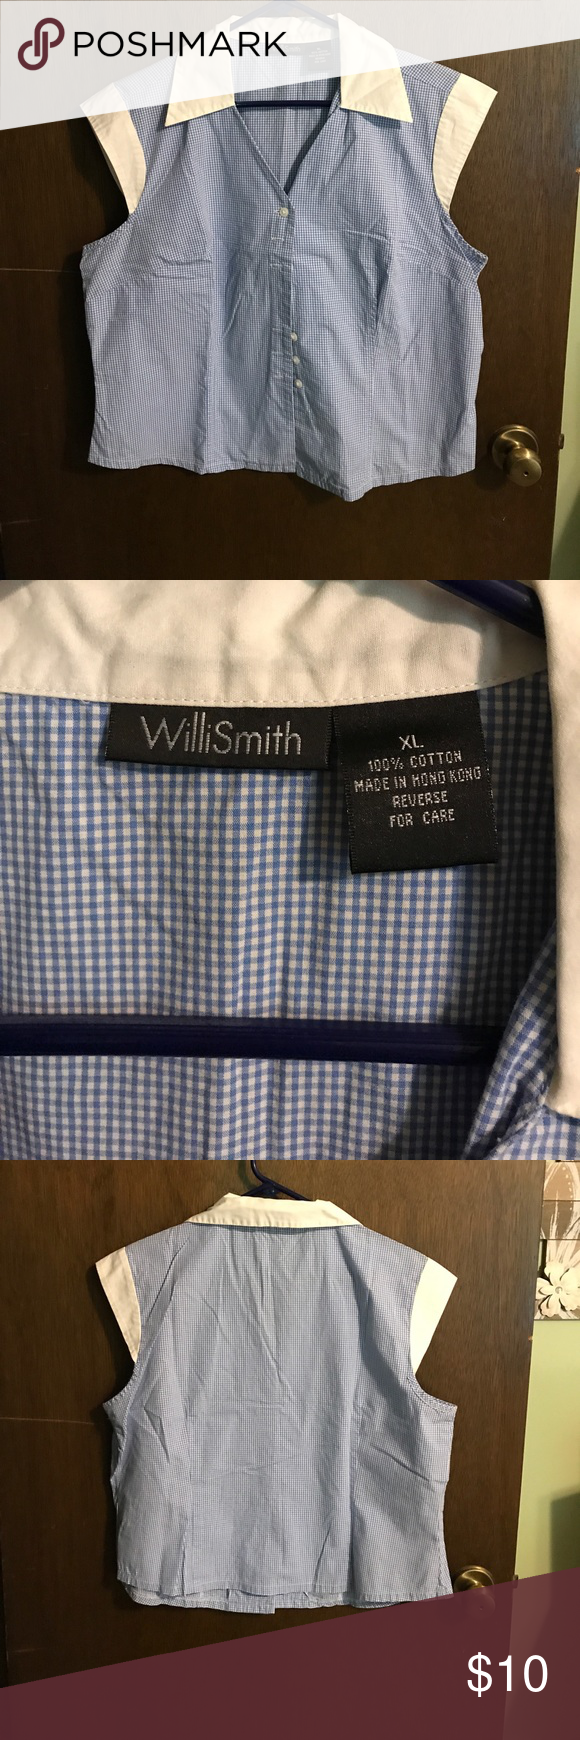 """WilliSmith XL button up shirt. WilliSmith super cute crisp looking blue and white shirt. 21"""" armpit to armpit and 21"""" in length. Cap sleeves and hits just below waist. EUC Willi Smith Tops Button Down Shirts"""